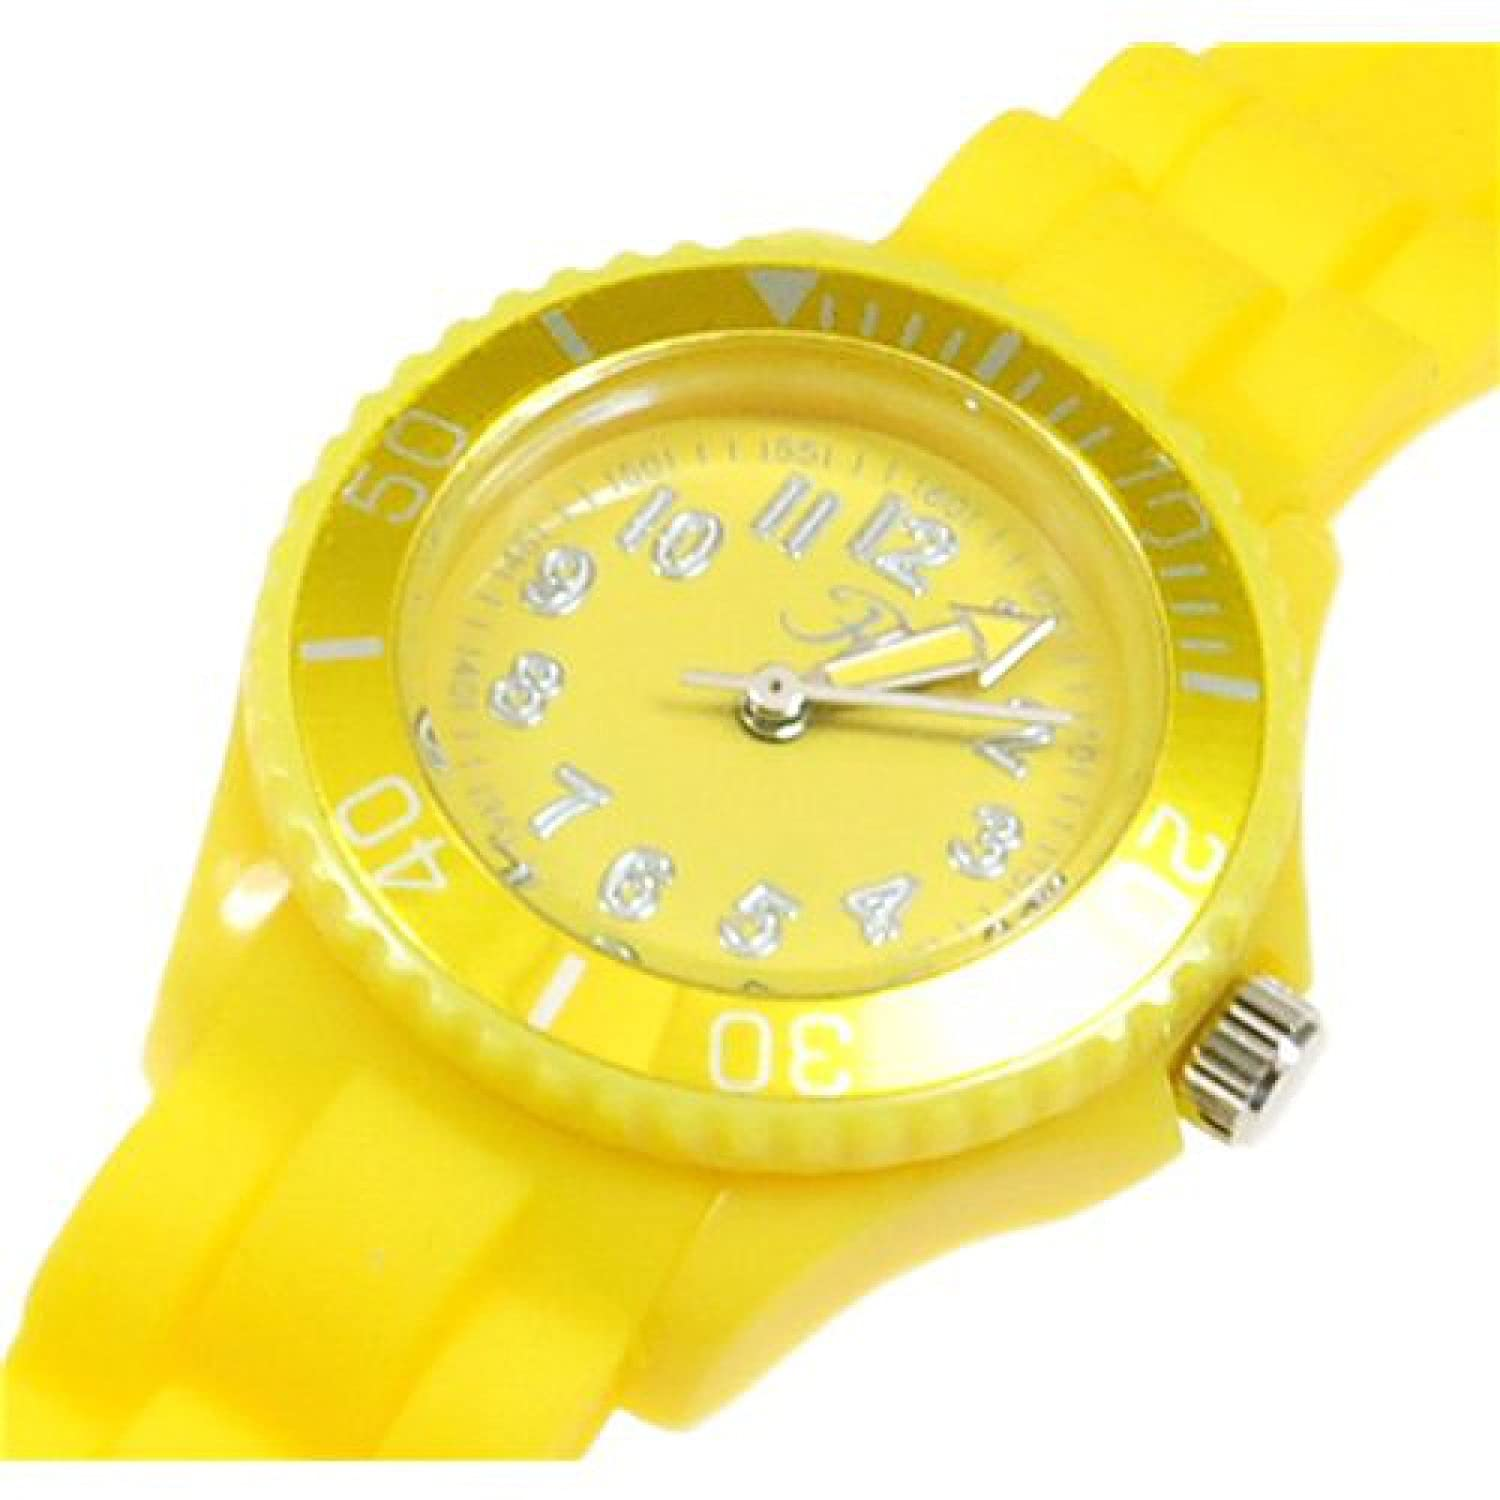 uk reflex childrens s strap girls watch rubber amazon children dp watches yellow silicon size co boys